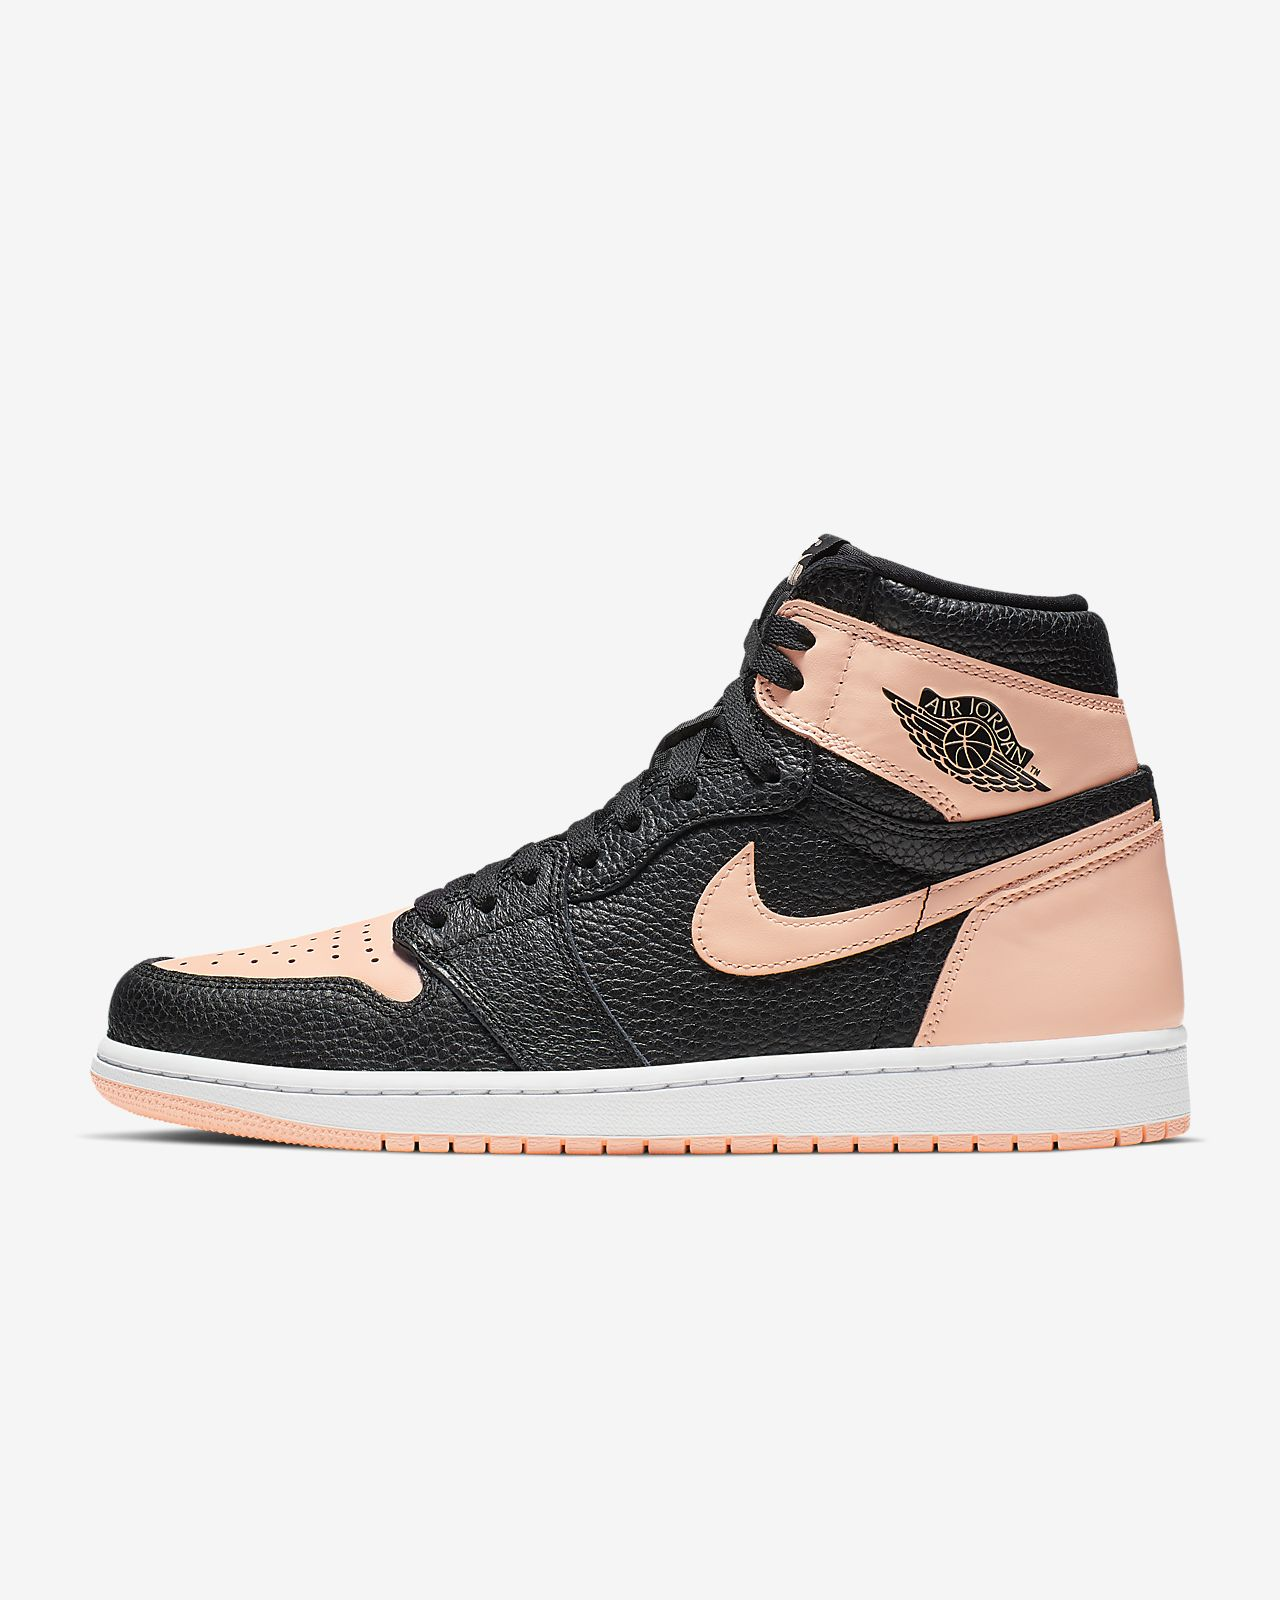 89eca1dfde3 Air Jordan 1 Retro High OG Shoe. Nike.com